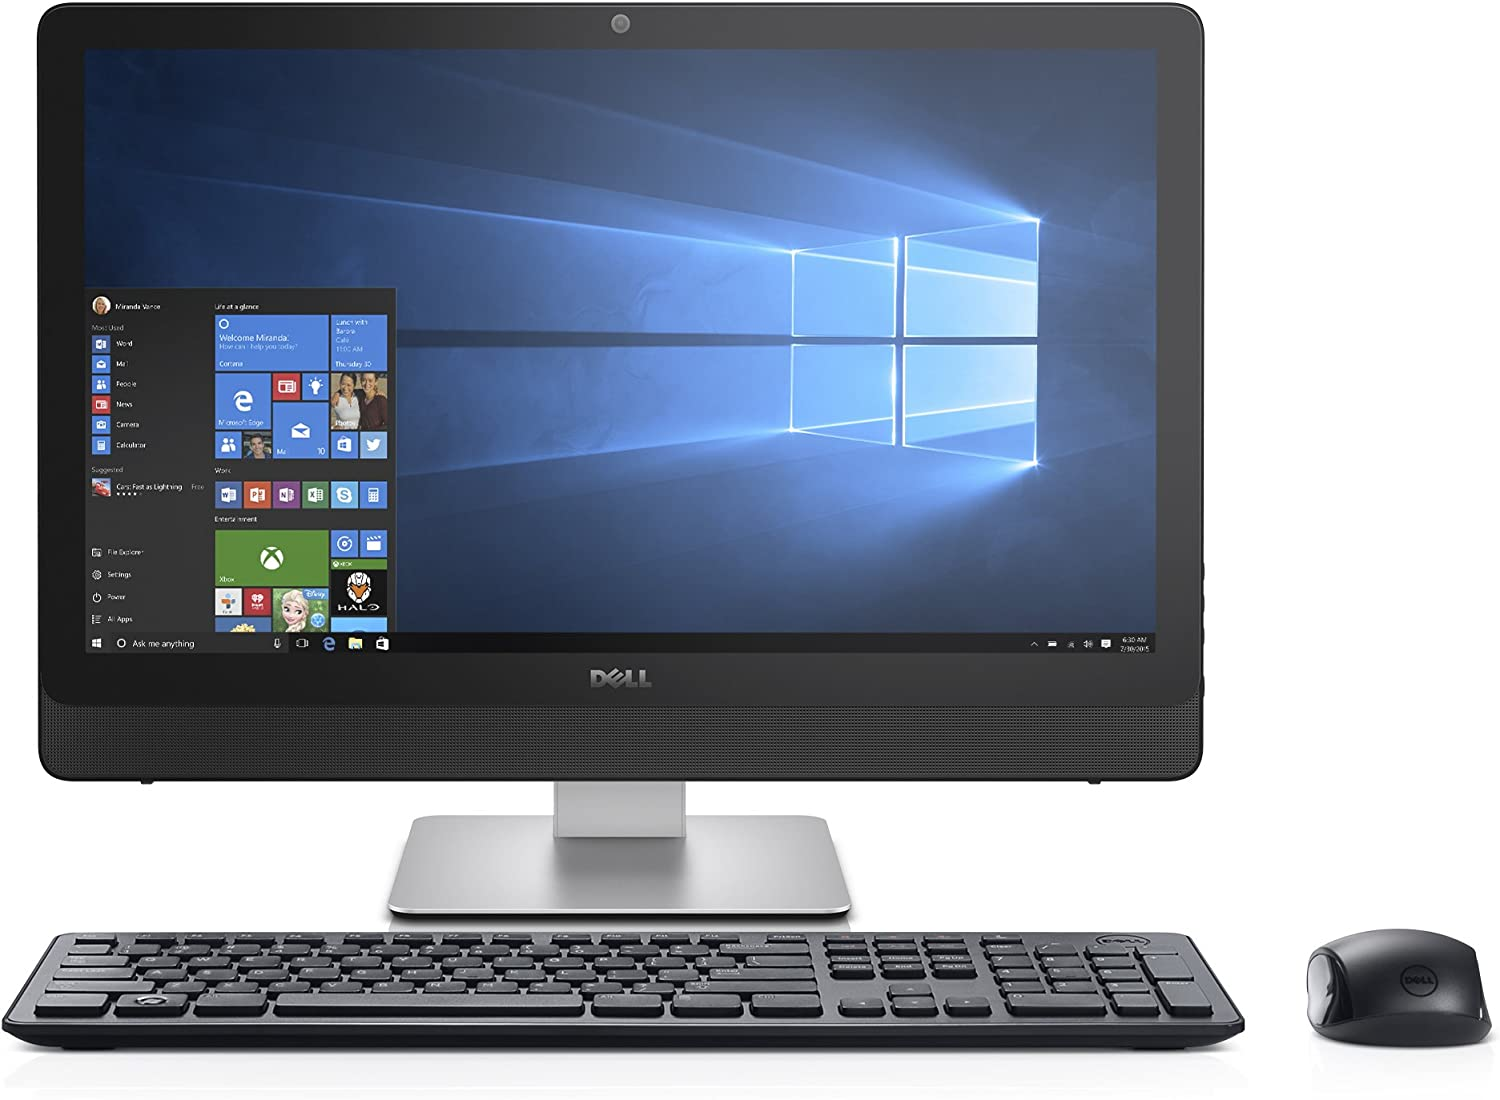 Dell Inspiron 24 3000 Series Touchscreen All-In-One (Intel Core i3, 8 GB RAM, 1 TB HDD)